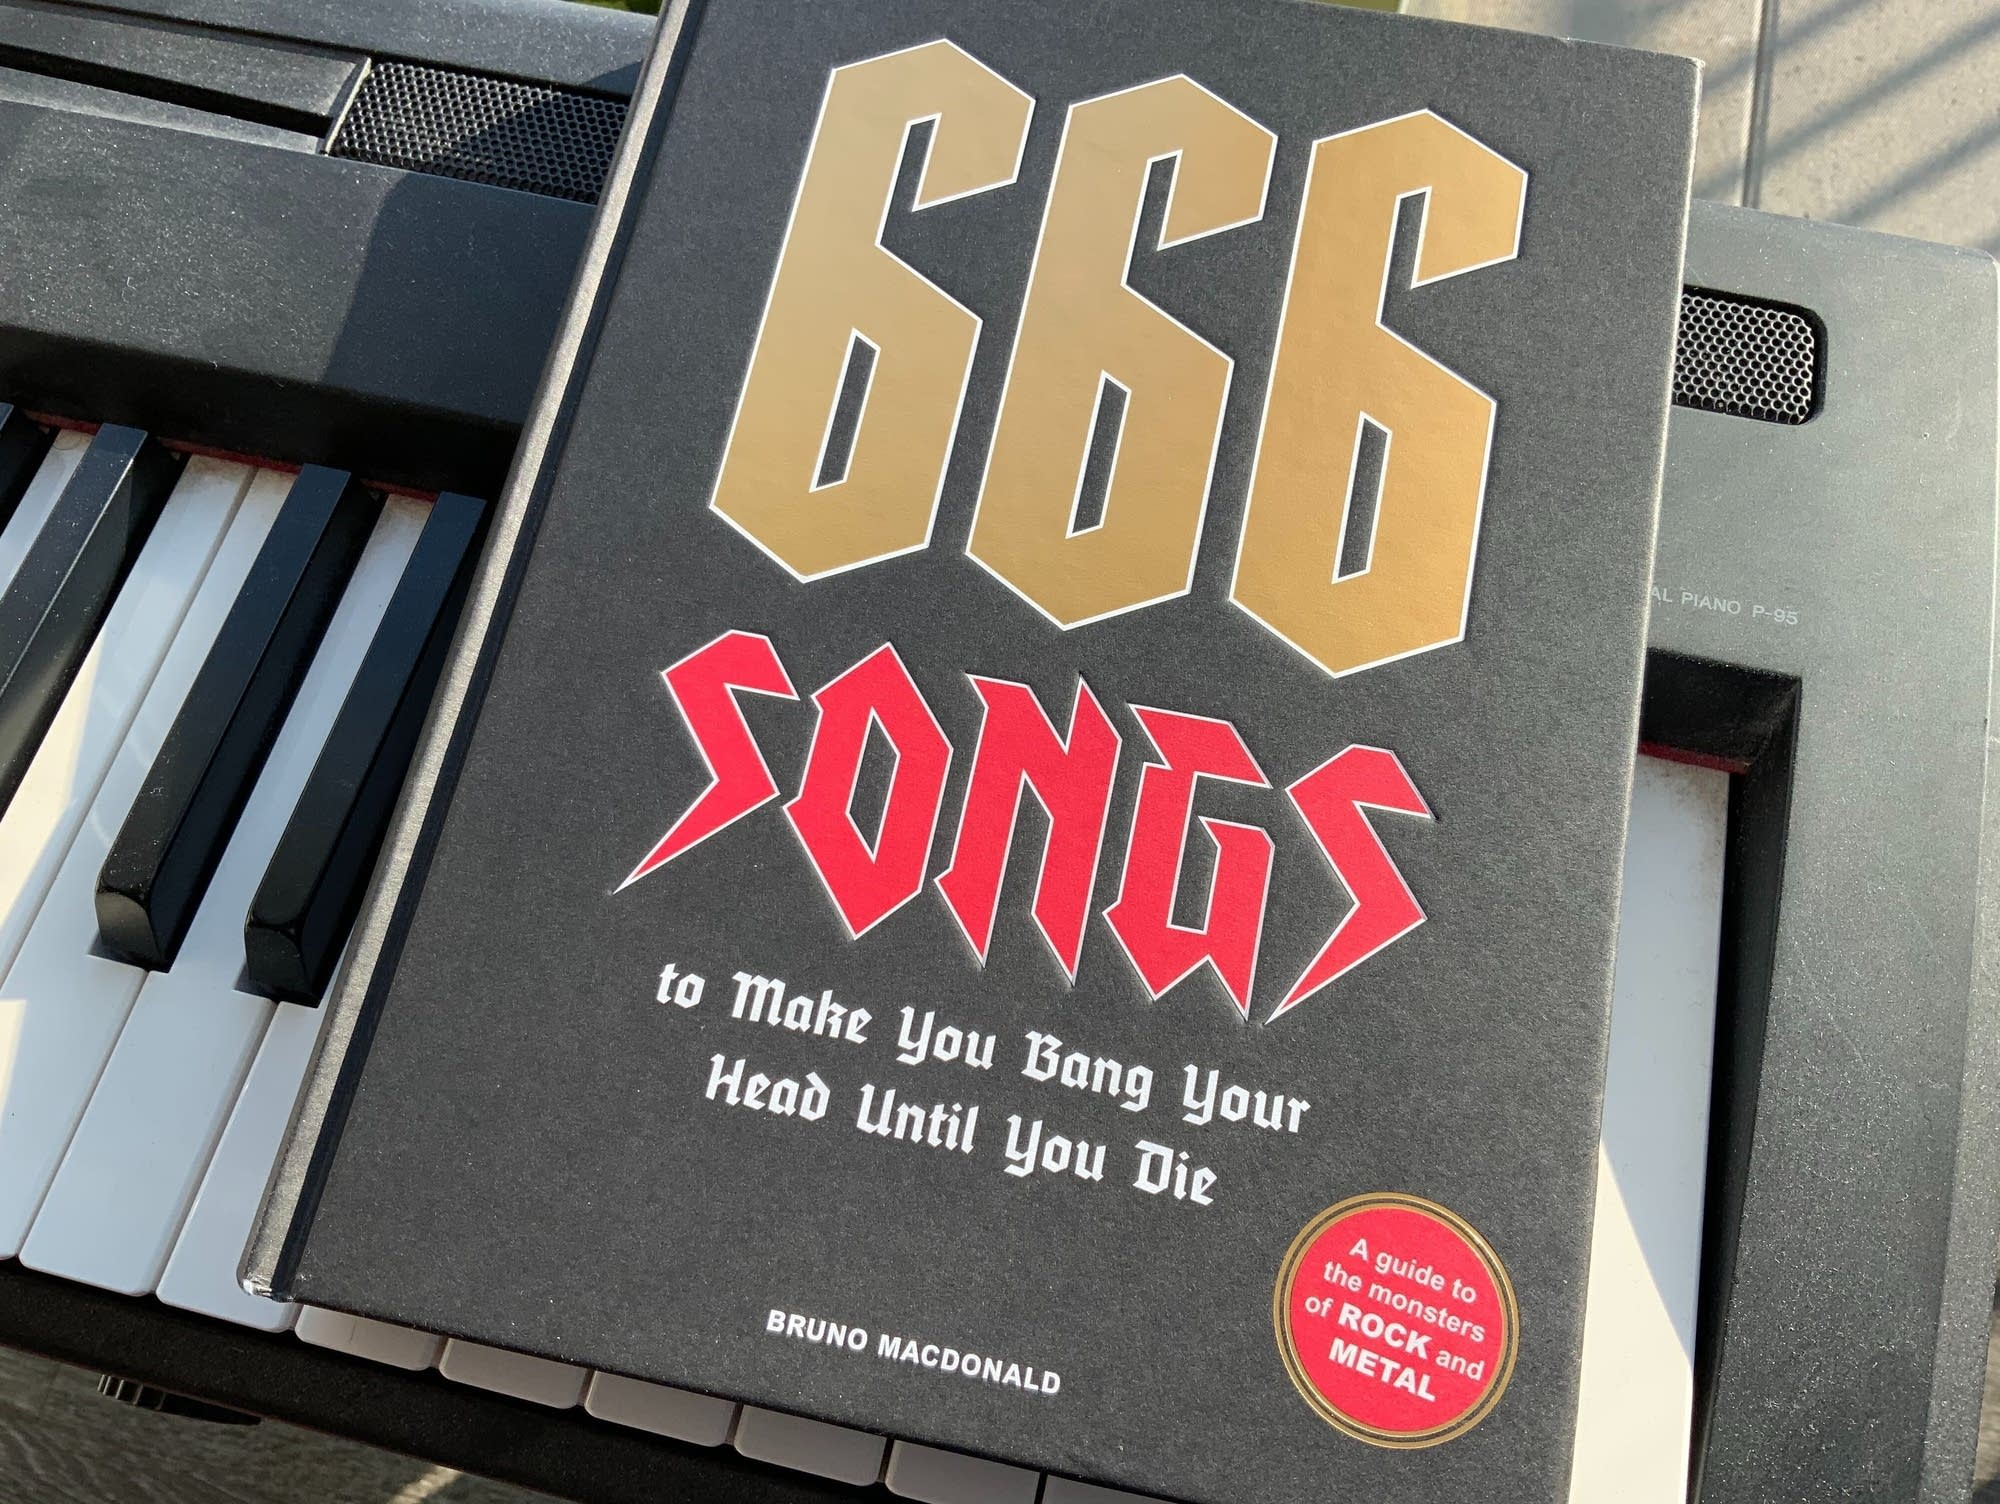 '666 Songs to Make You Bang Your Head Until You Die.'